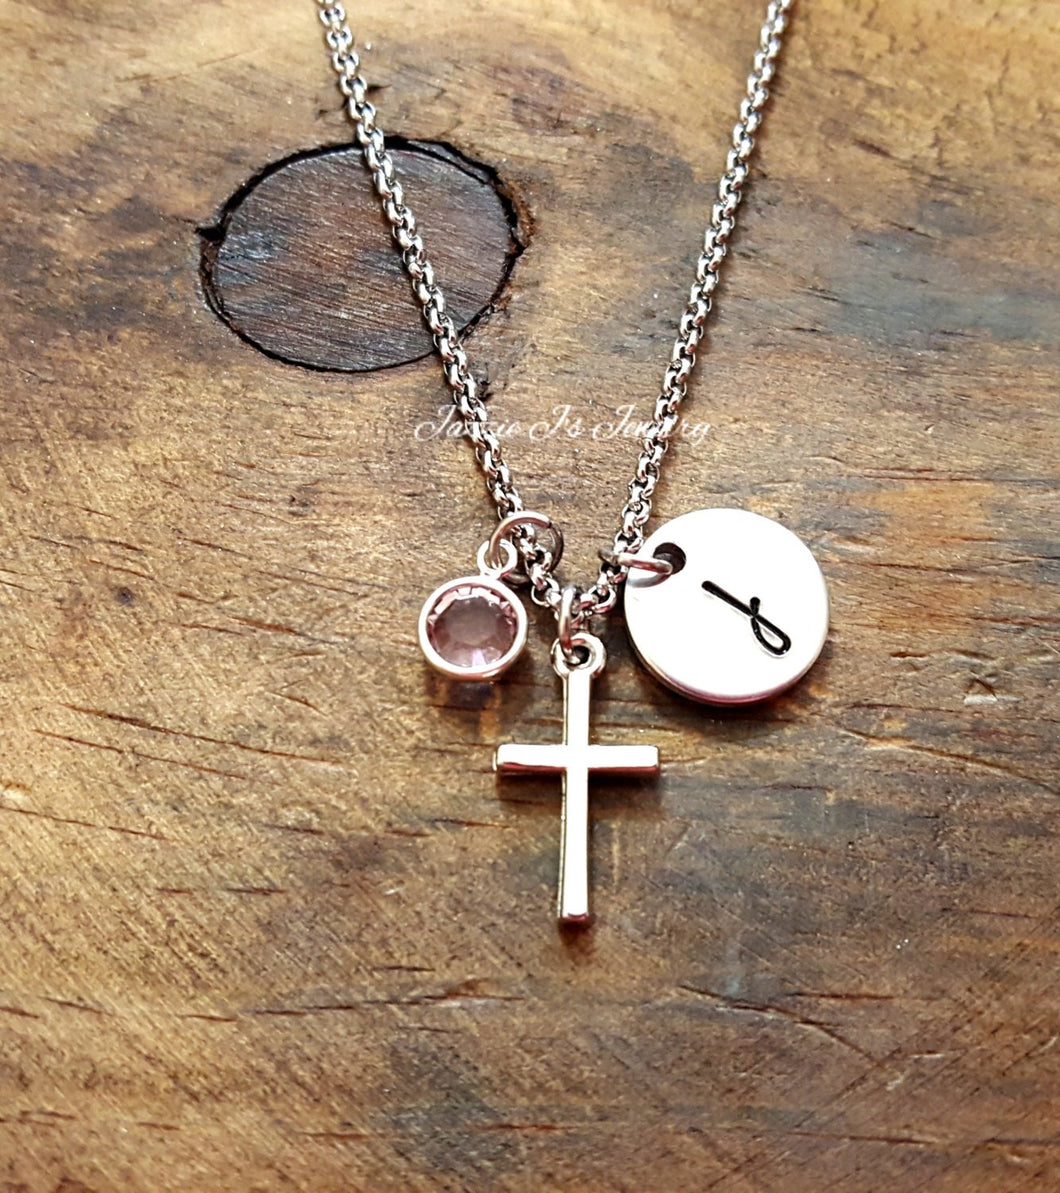 Personalized Initial Cross Necklace-JazzieJ'sJewelry